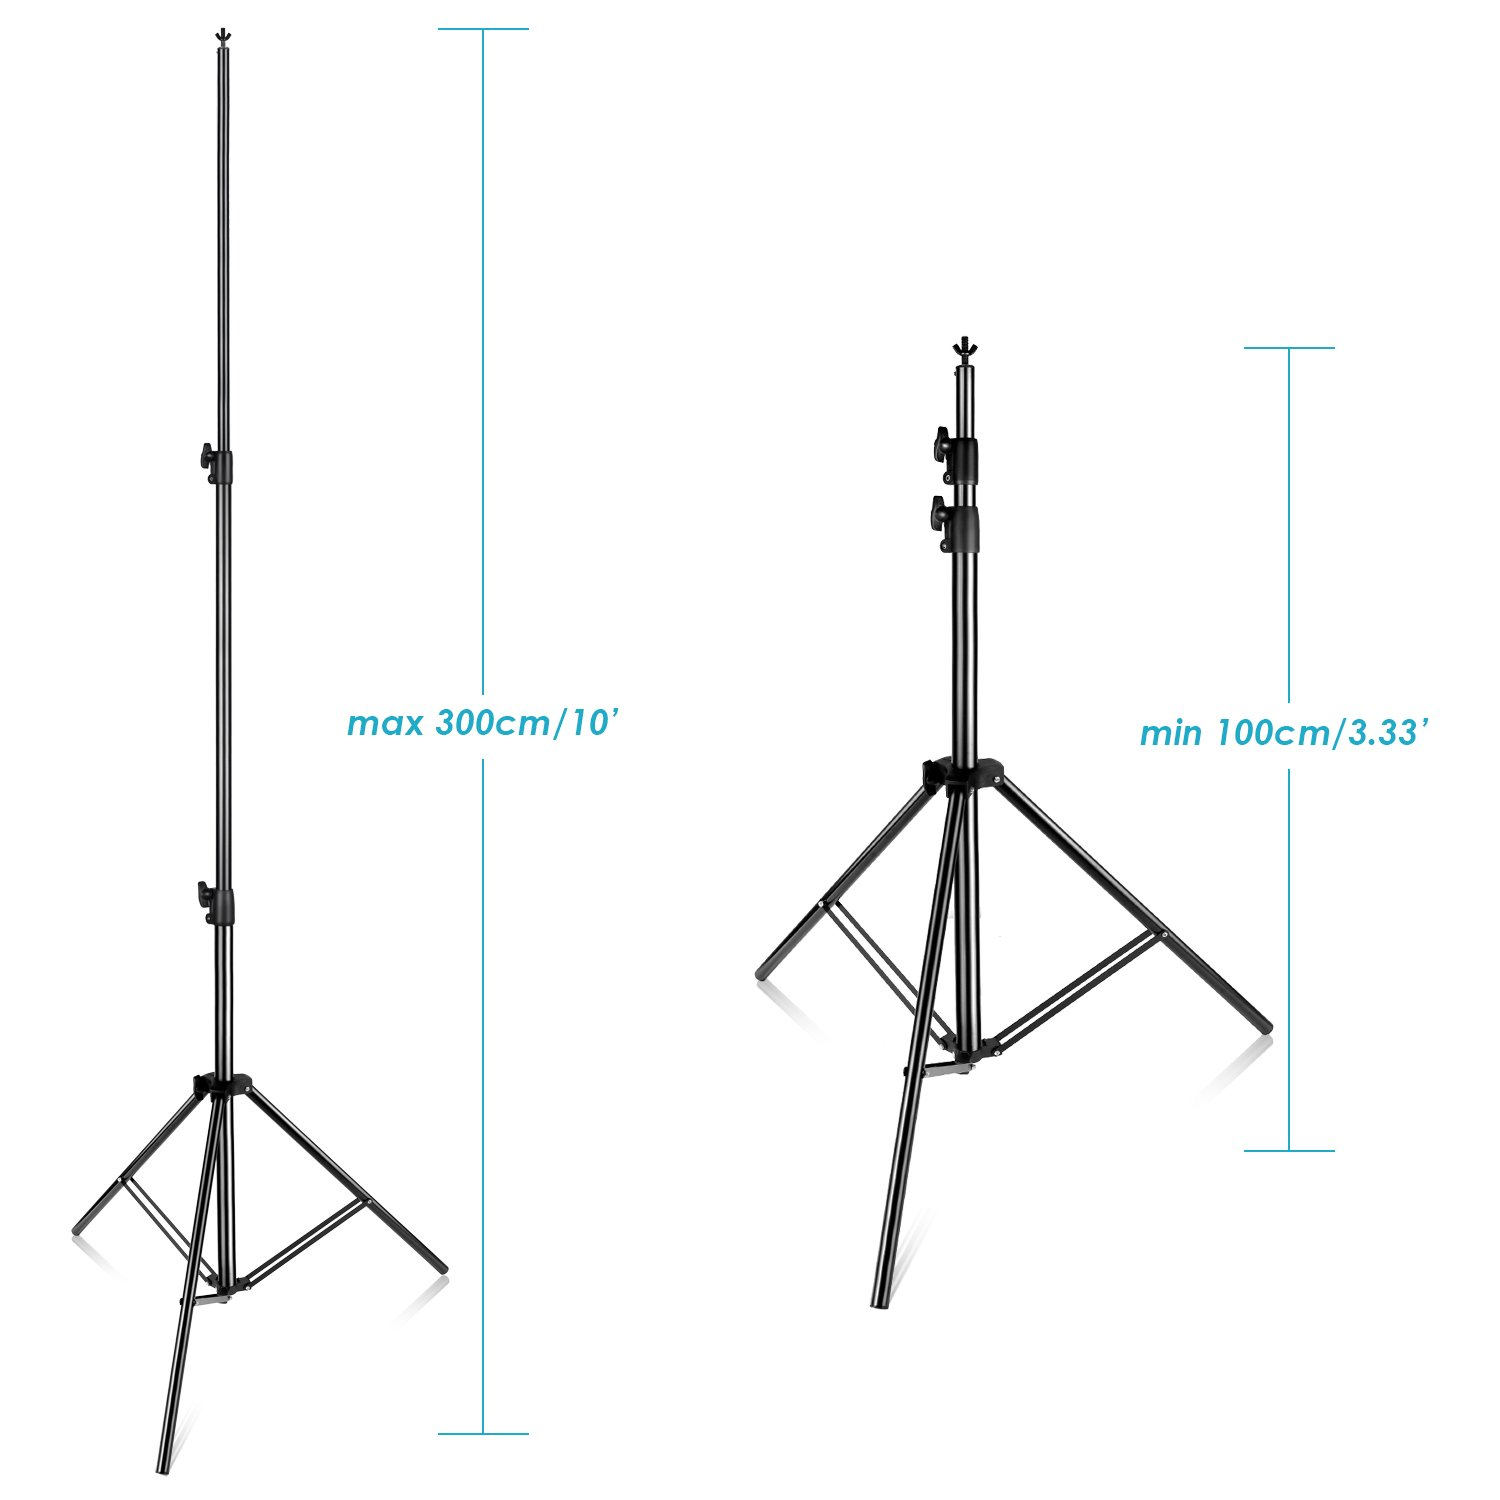 Neewer Pro 10x12 feet/3x3.6 Meters Heavy Duty Adjustable Backdrop Support System Photography Studio Video Stand with Carrying Bag for Backdrop Background by Neewer (Image #4)